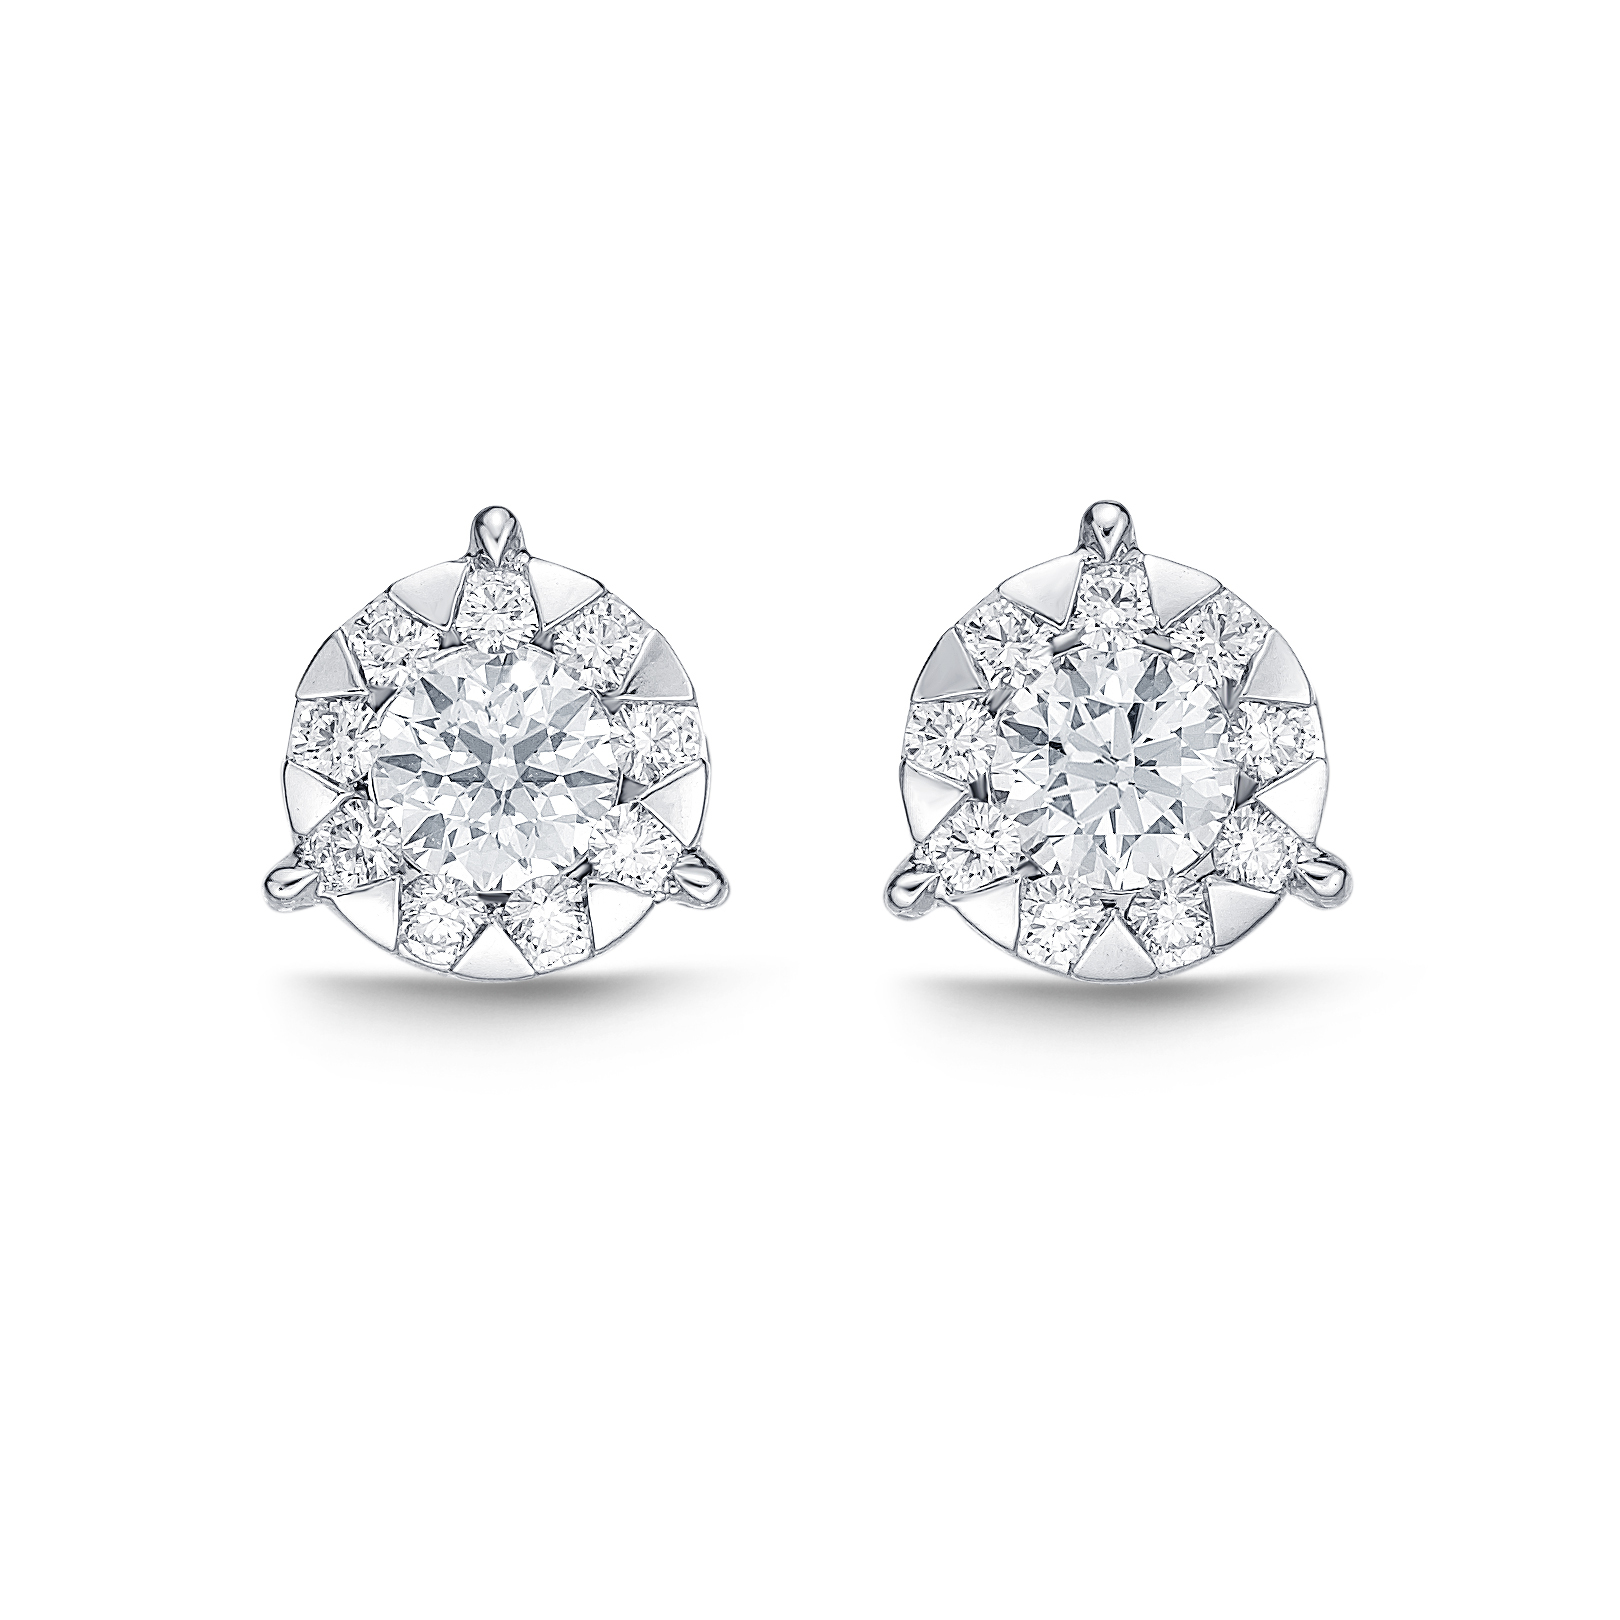 Memoire 18ct White Gold 0.45 Carat Diamond 3 Prong Bouquet Style Stud Earrings